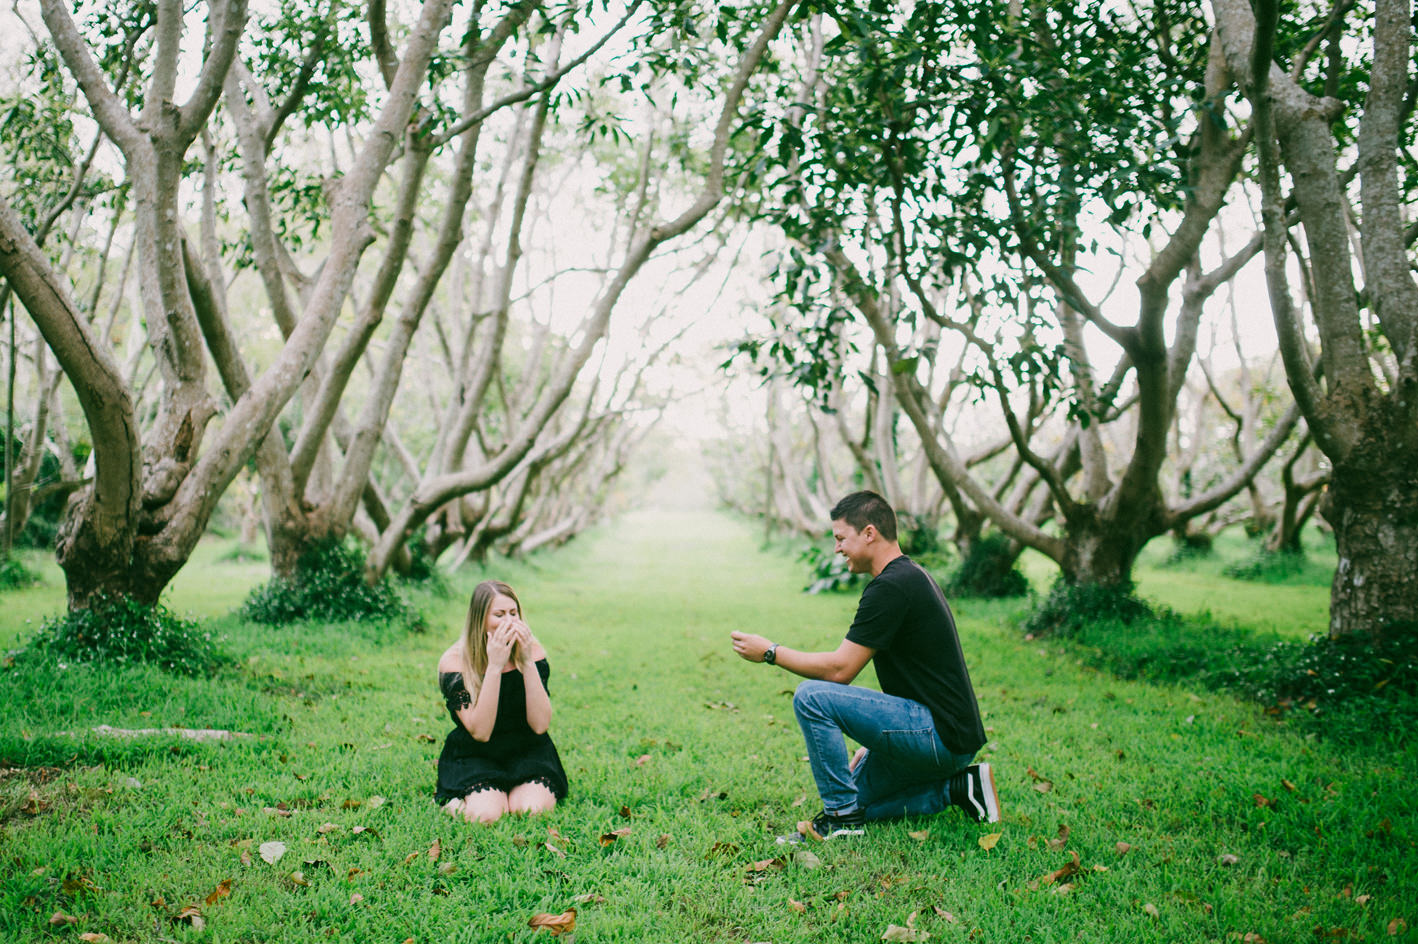 017-proposal-dan-ash_sophie-baker-photography